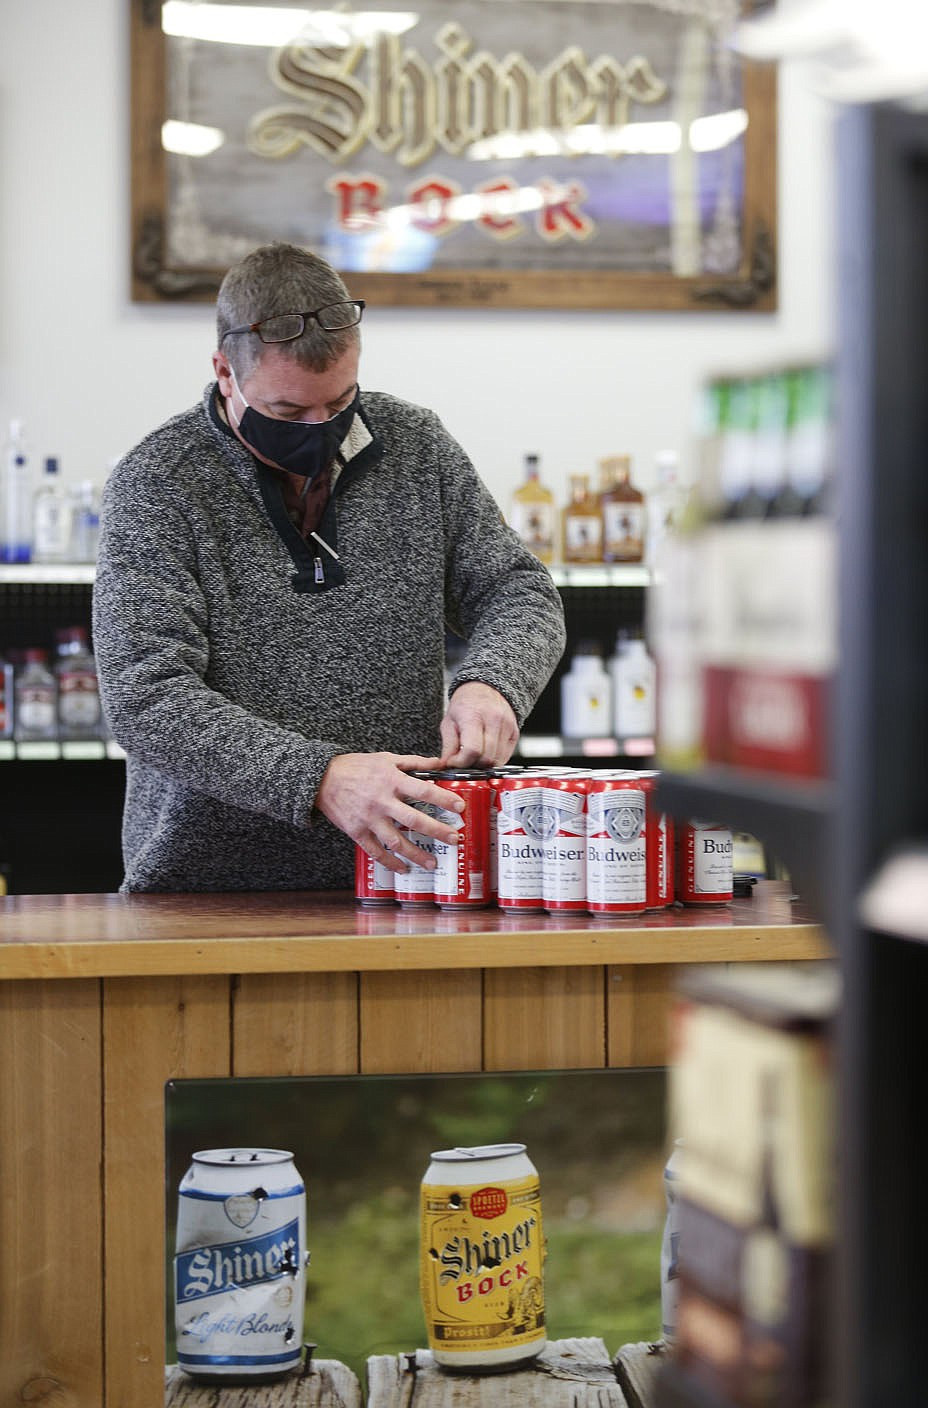 Charles Jech builds Tuesday, January 26, 2021, six packs of beer inside C and J Liquor located at 129 Fowler St., Suite A in Gentry. A special election on Feb. 9 will determine whether to authorize the sale of alcoholic beverages for off-premises consumption on Sundays between the hours of 10 a.m. and midnight within the city of Gentry. The City Council on Sept. 8 voted to add the ballot initiative to the Nov. 3 general election following a petition by Charles and Jerah Jech to have the initiative added to the ballot. The measure was submitted too late for the Nov. 3 ballot and was moved to December. When that wouldn't work, the election was scheduled for Feb. 9. Check out nwadg.com/photos for a photo gallery. (NWA Democrat-Gazette/David Gottschalk)